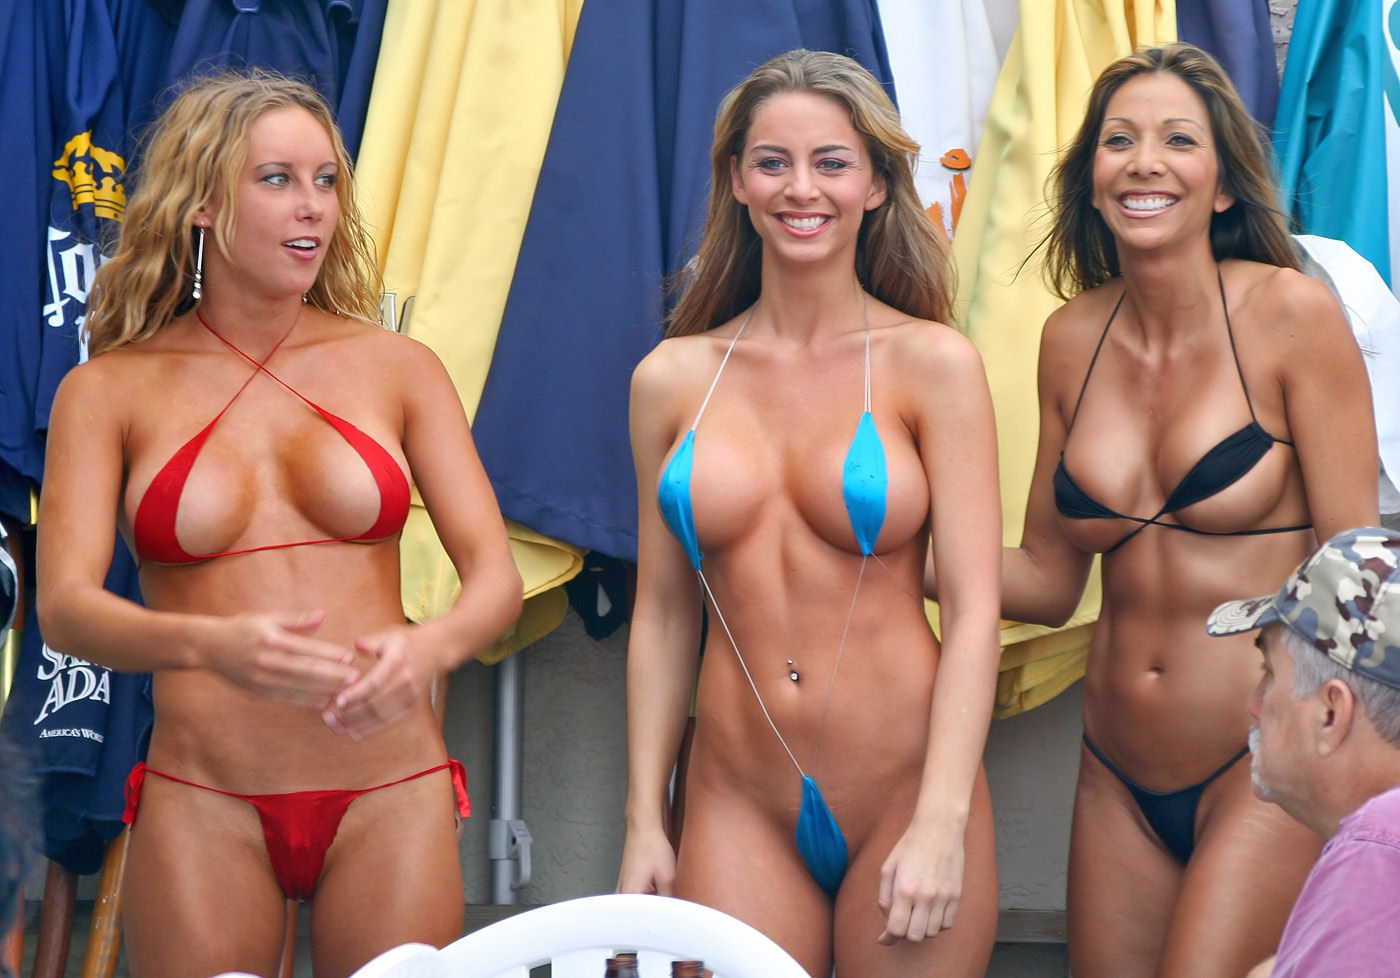 There micro bikini contest girls talented